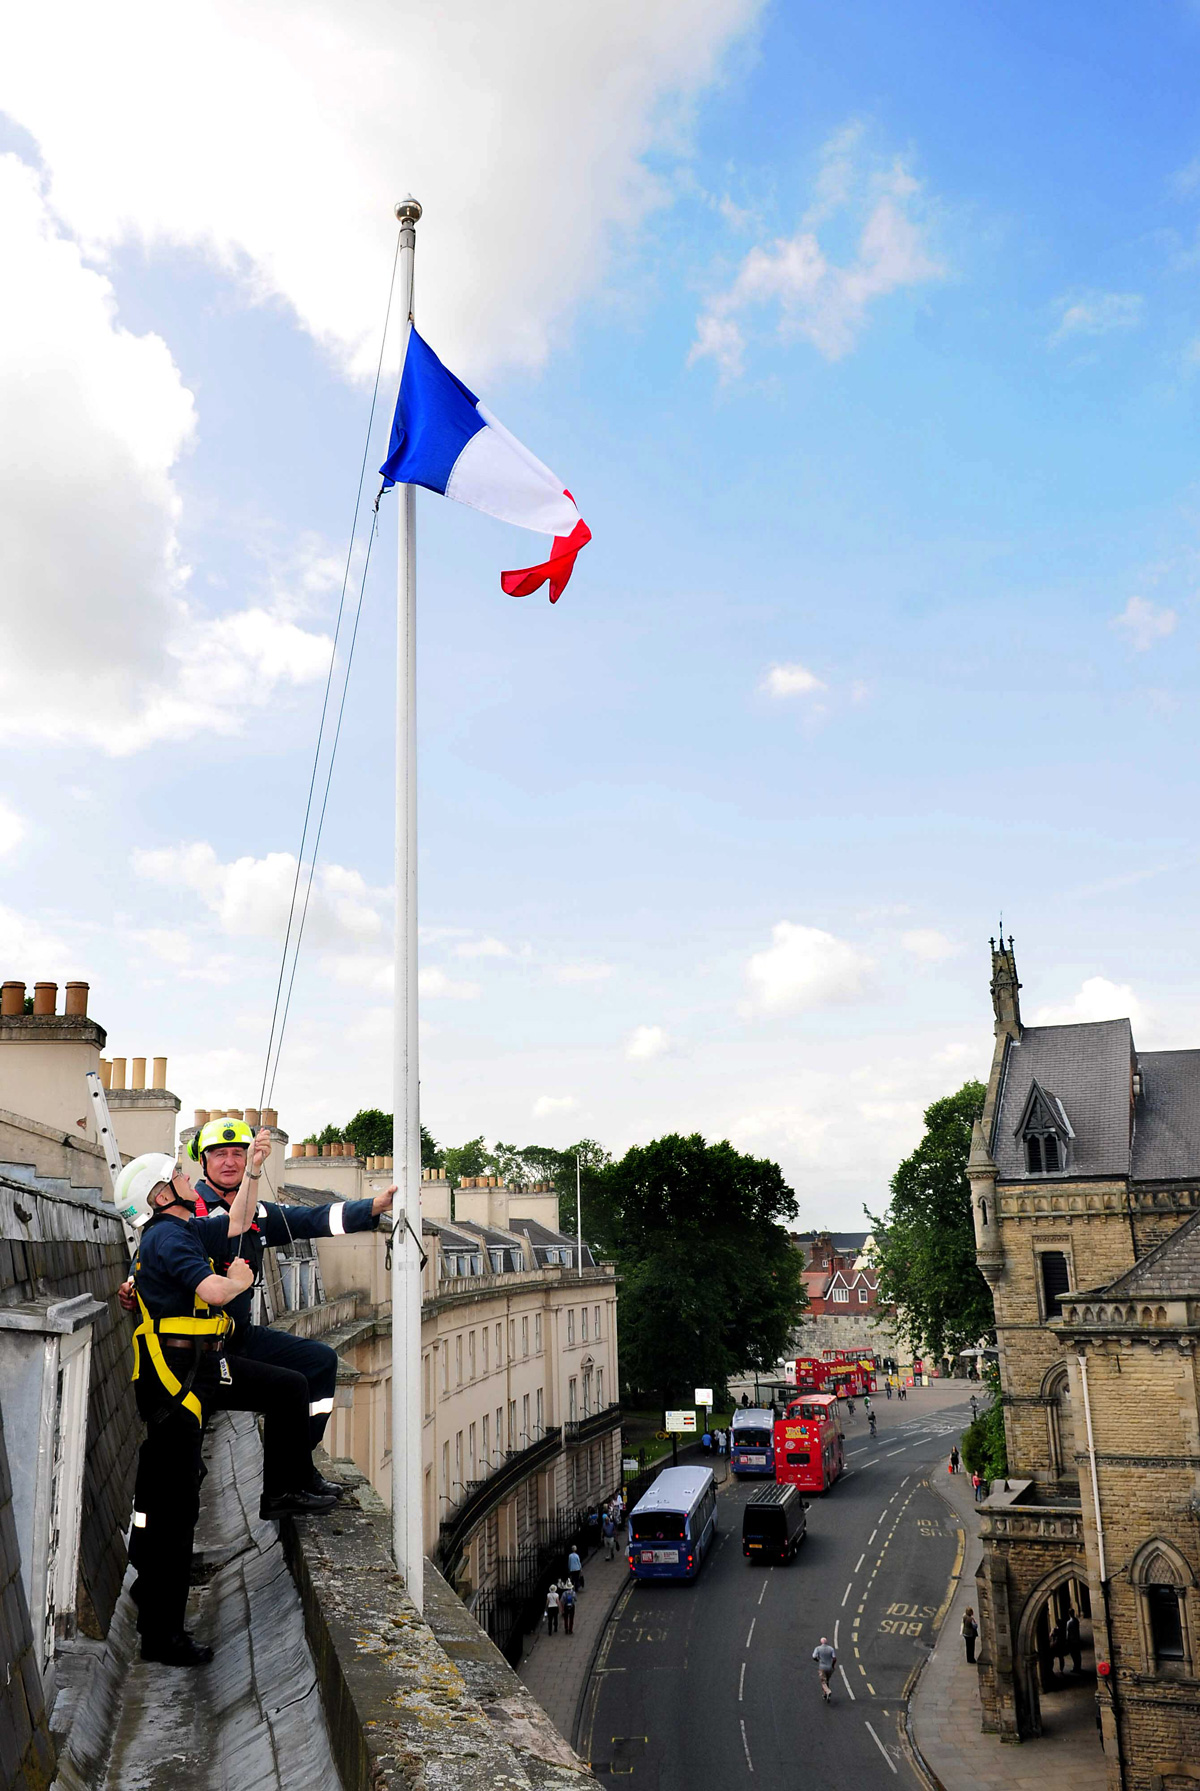 French flag flies over York ahead of Tour de France